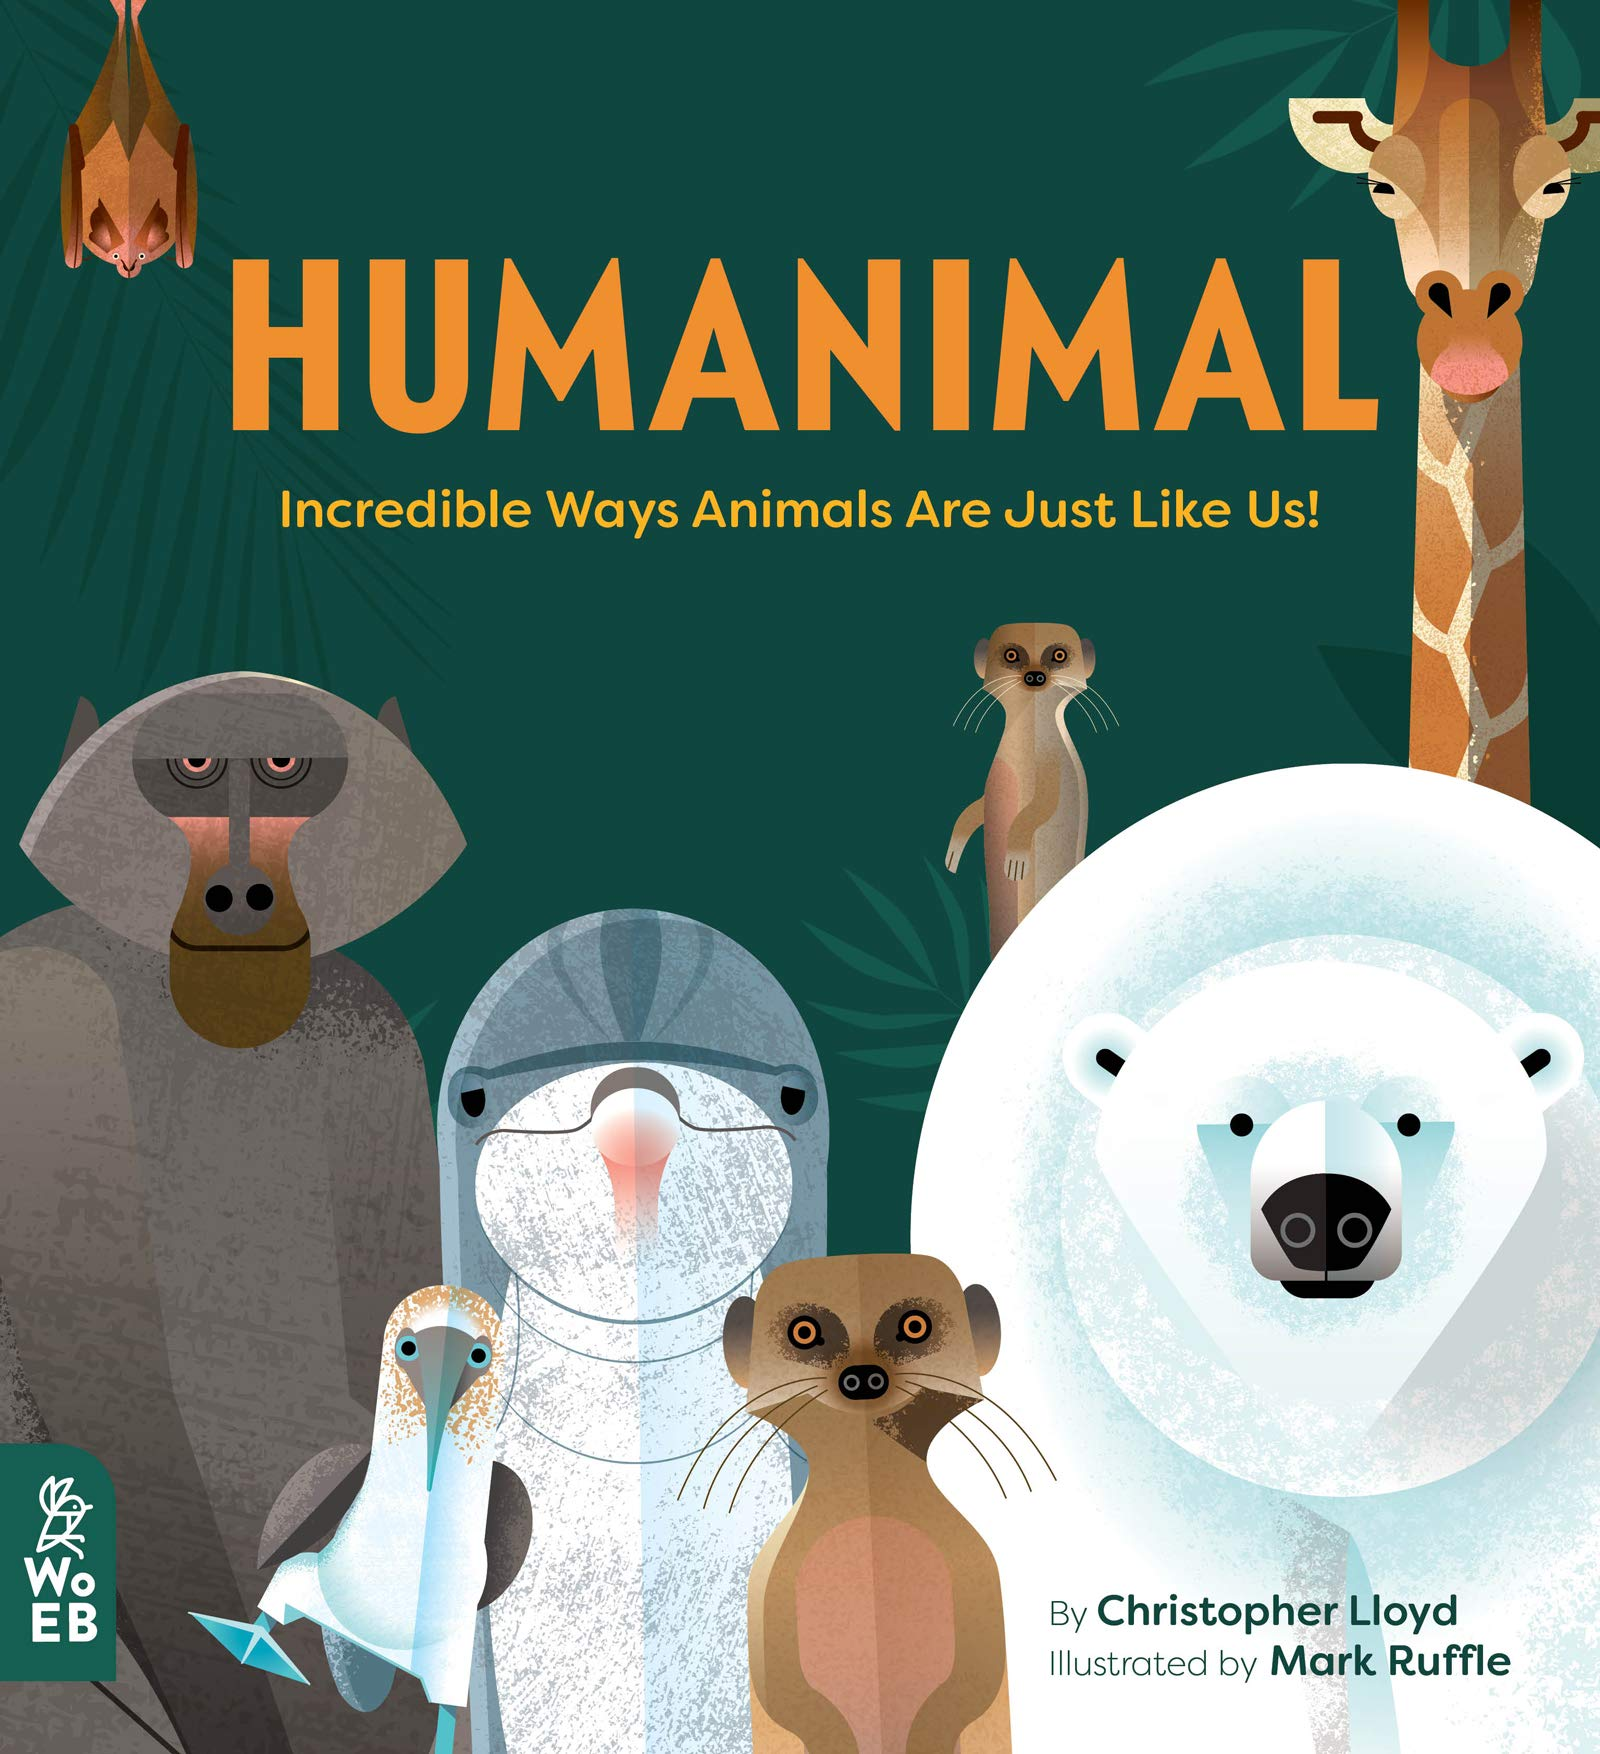 Humanimal: Incredible Ways Animals are Just Like Us!